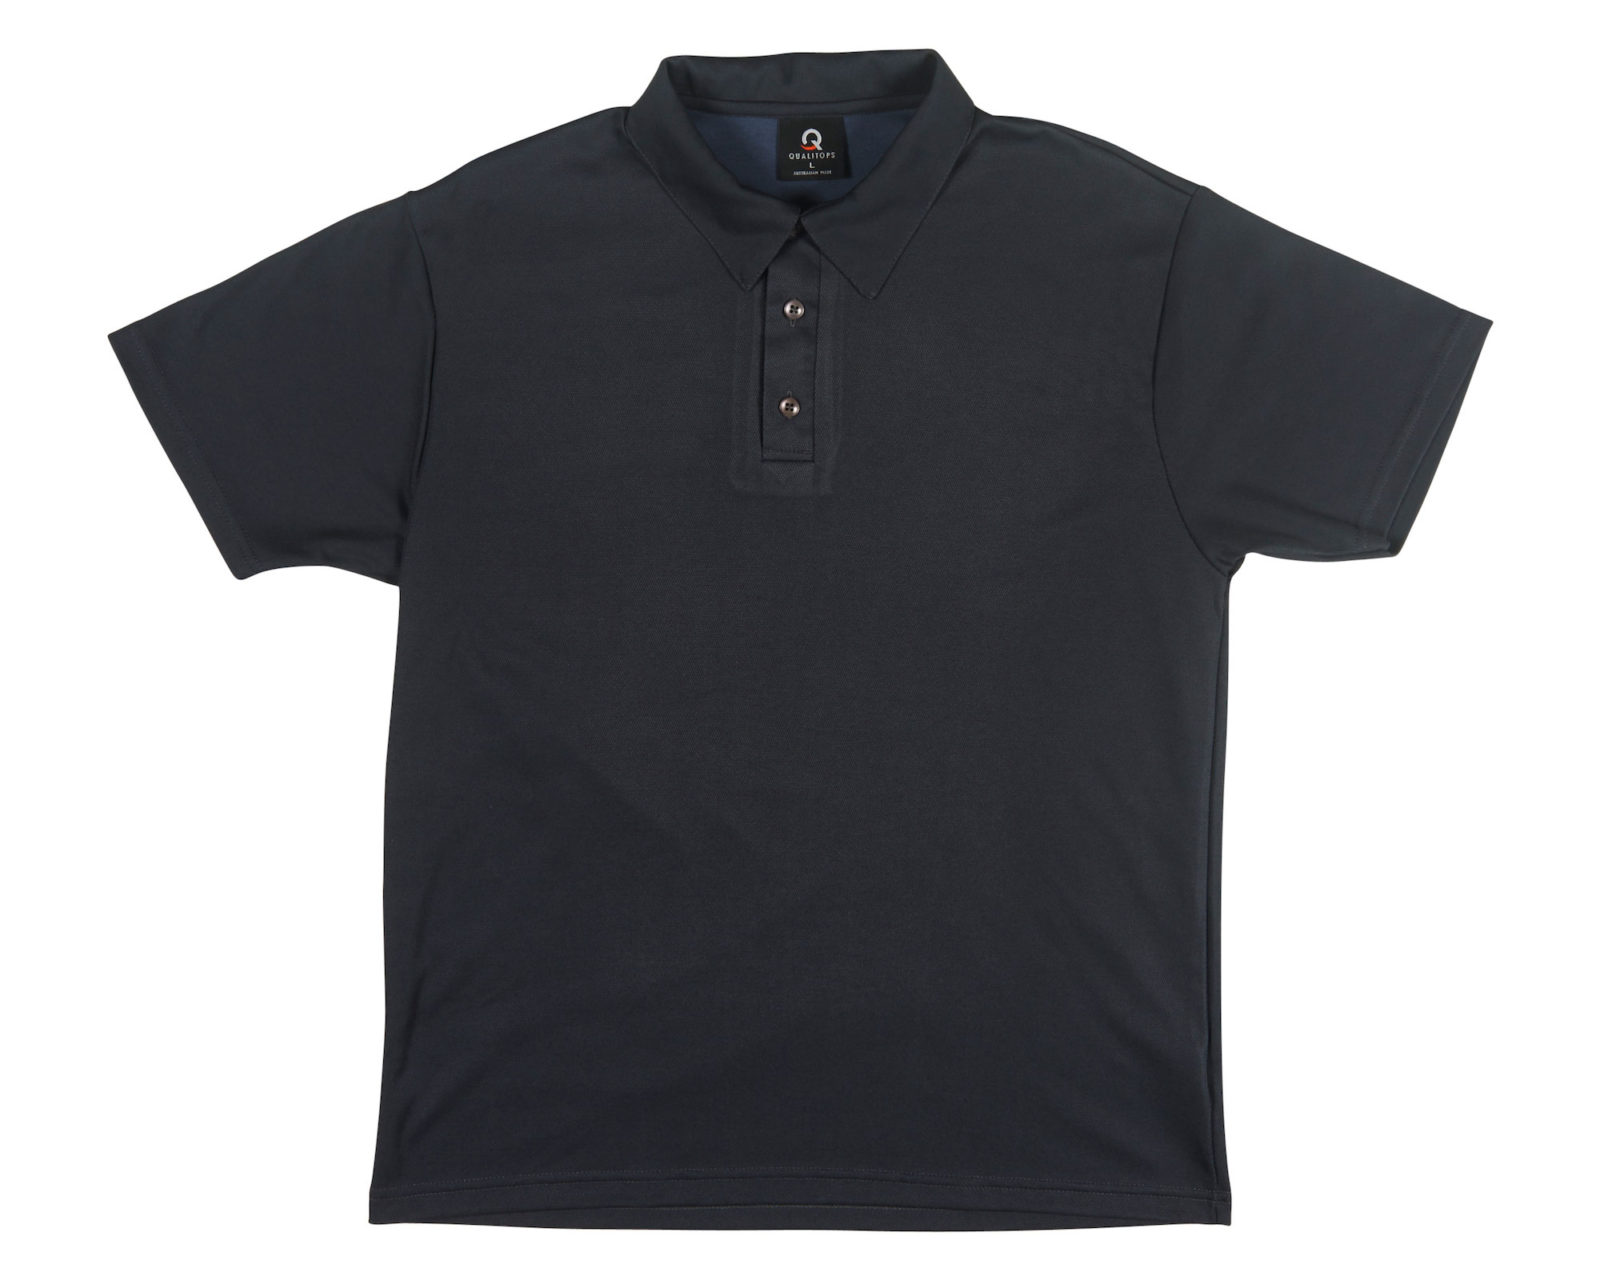 Qualitops Custom Made Mens Short Sleeve Polo Polyester Australian made clothing